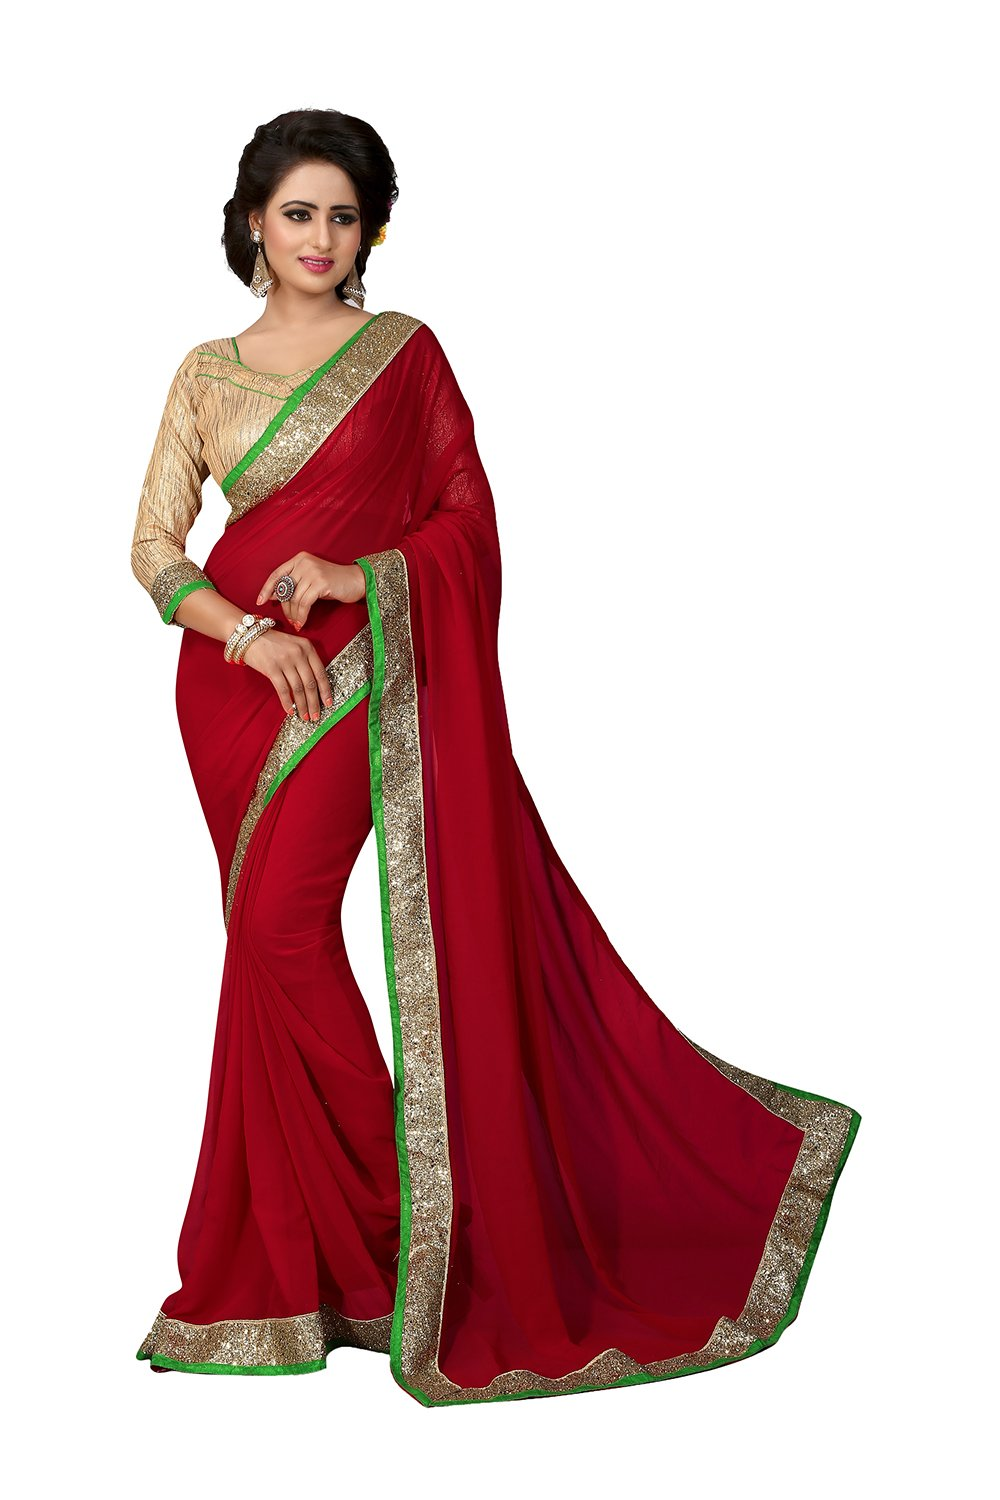 Indian Sarees for Women Wedding Designer Party Wear Traditional Red Saree.